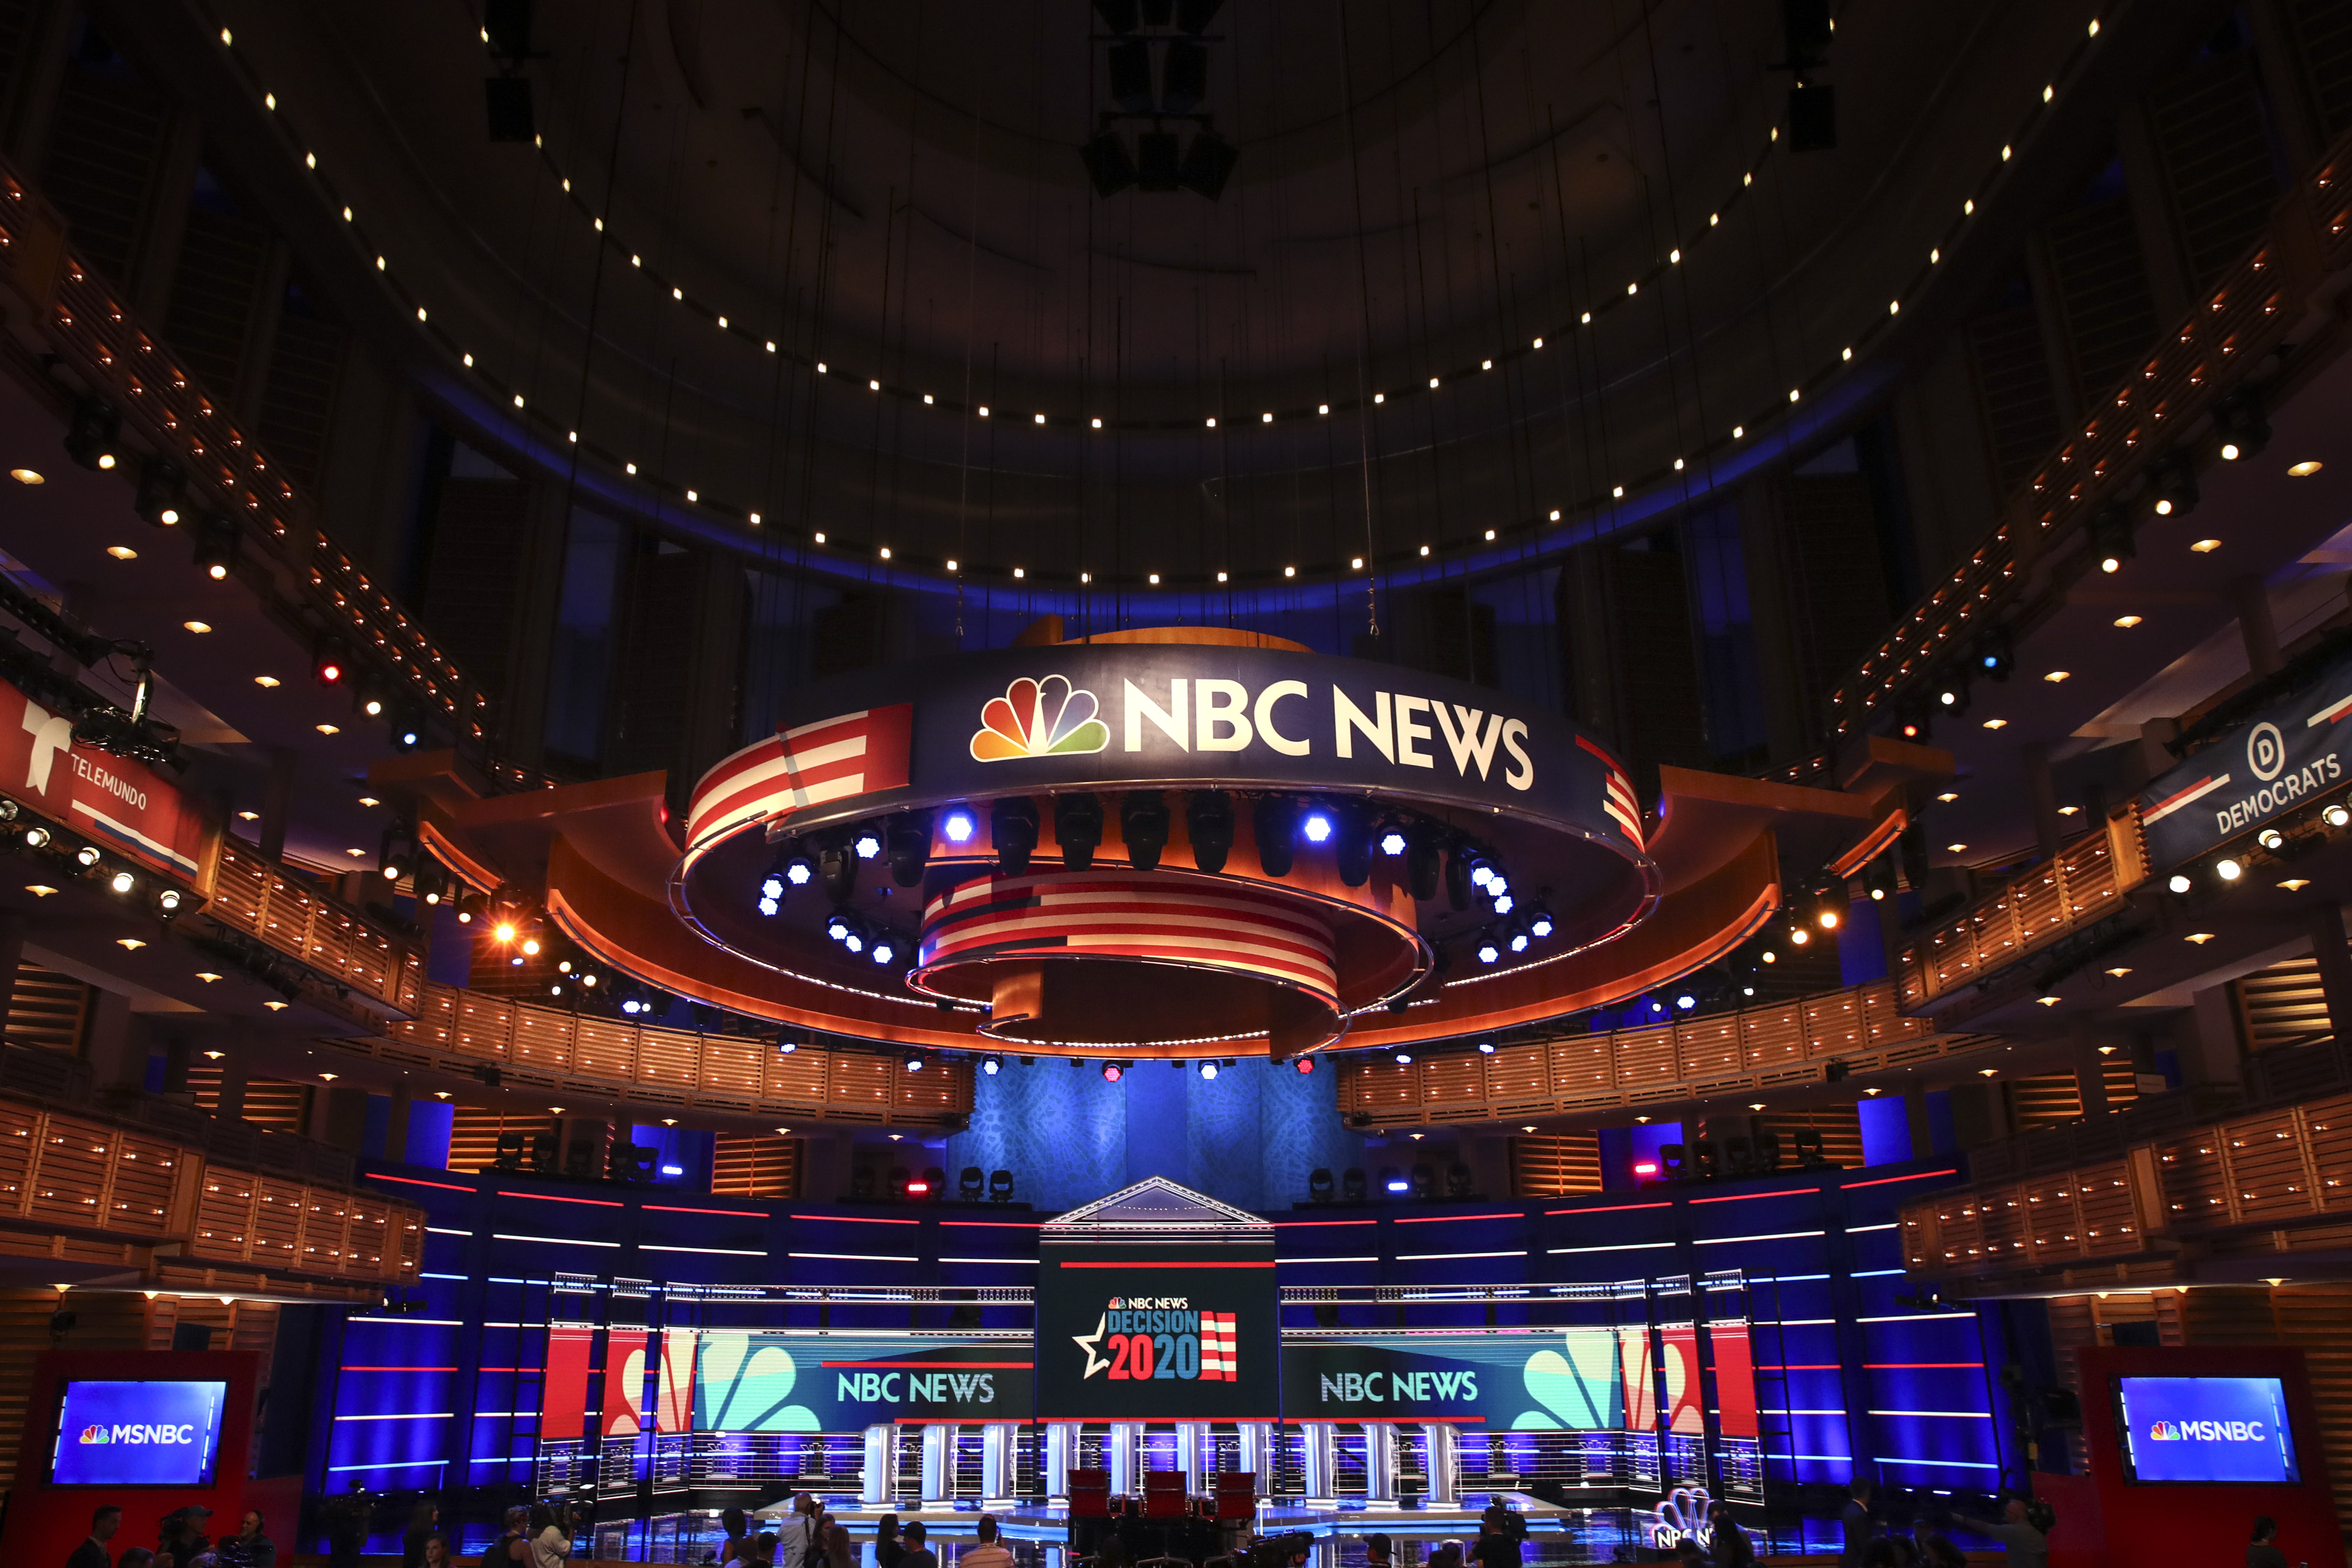 Democratic 2020 presidential contenders should elaborate on what sets them apart on climate change during the debates, an issue where many of them otherwise agree.